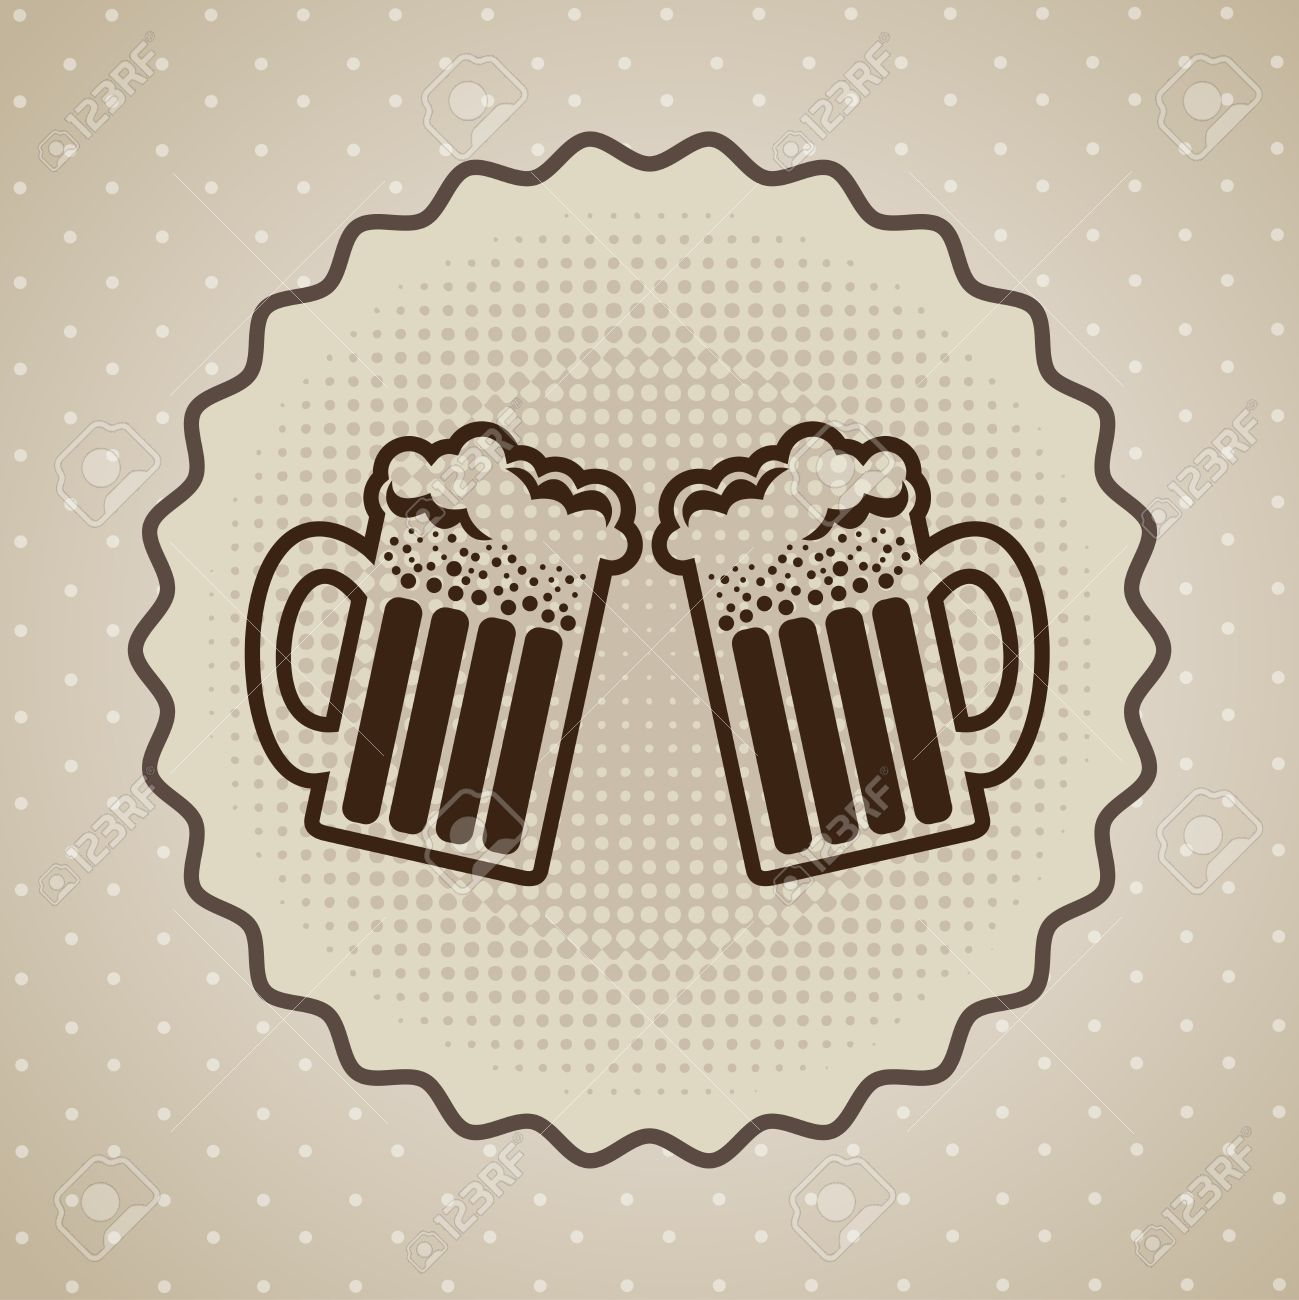 Beers label over dotted background Stock Vector - 21678841